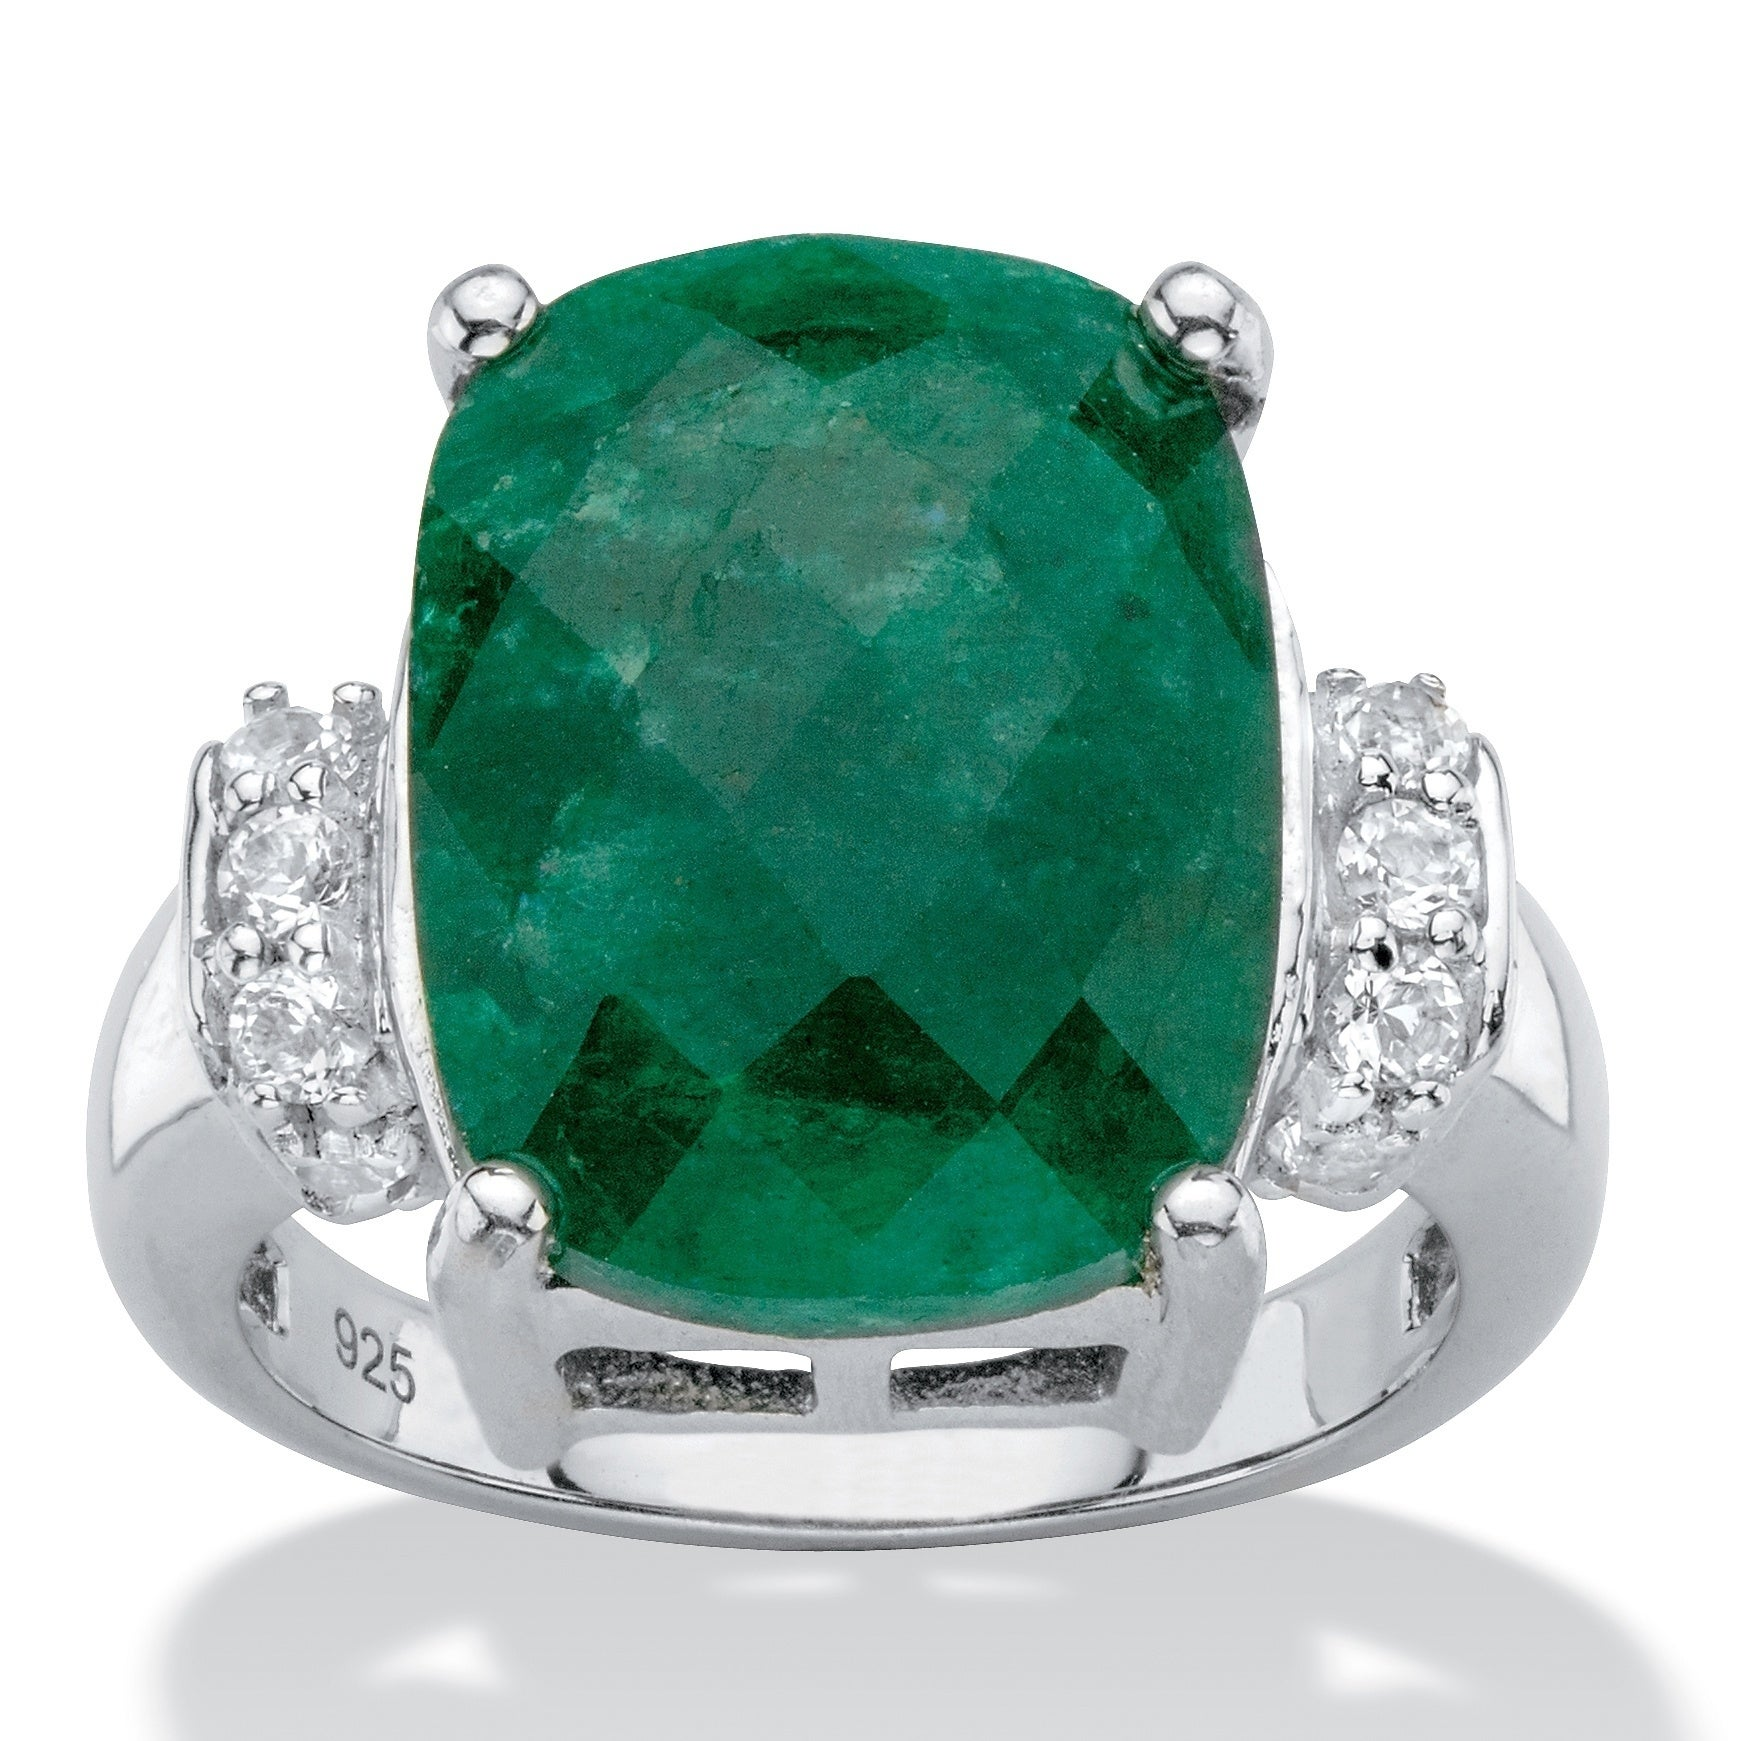 jewelry rings org id emerald j cushion for cut diamond at natural fashion white master ring sale carat and